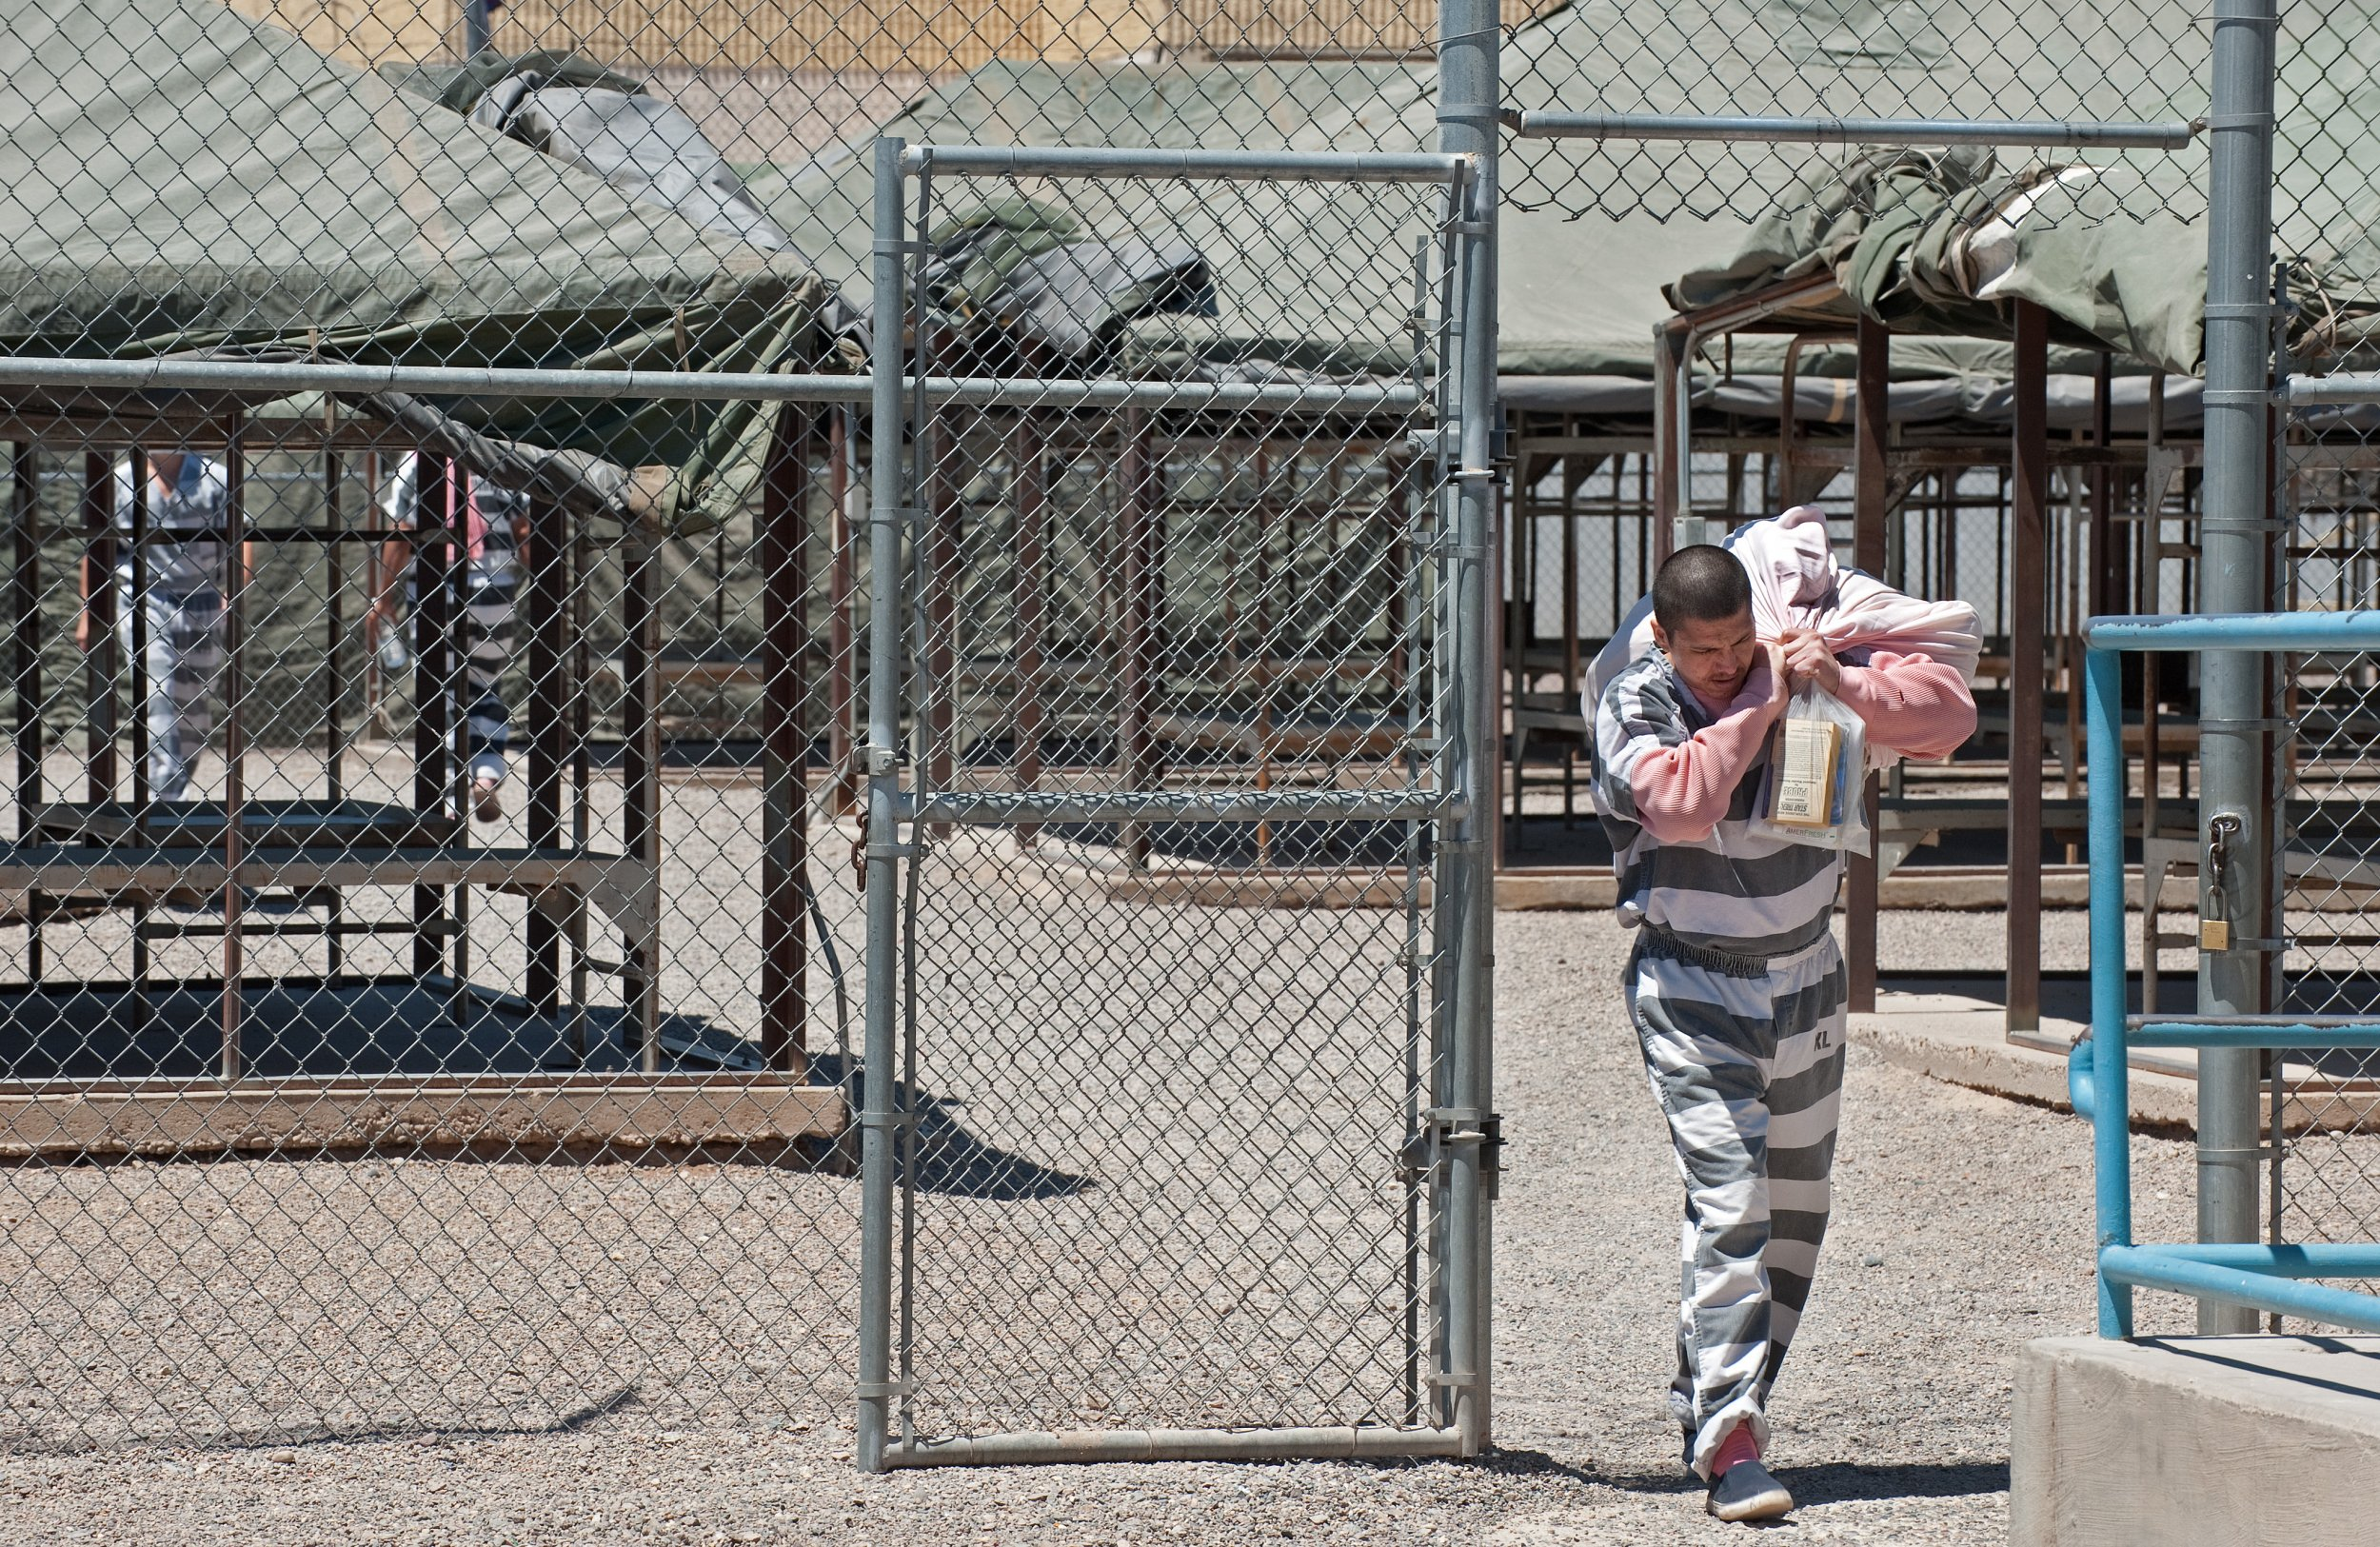 Former Sheriff Joe Arpaio kept prisoners in tents. But now that heu0027s gone thereu0027s a new sheriff in town u2014 and no more tents. PAUL J. RICHARDS/AFP/Getty & Joe Arpaiou0027s Tent City u0027Concentration Campu0027 Prisoners Have Been ...